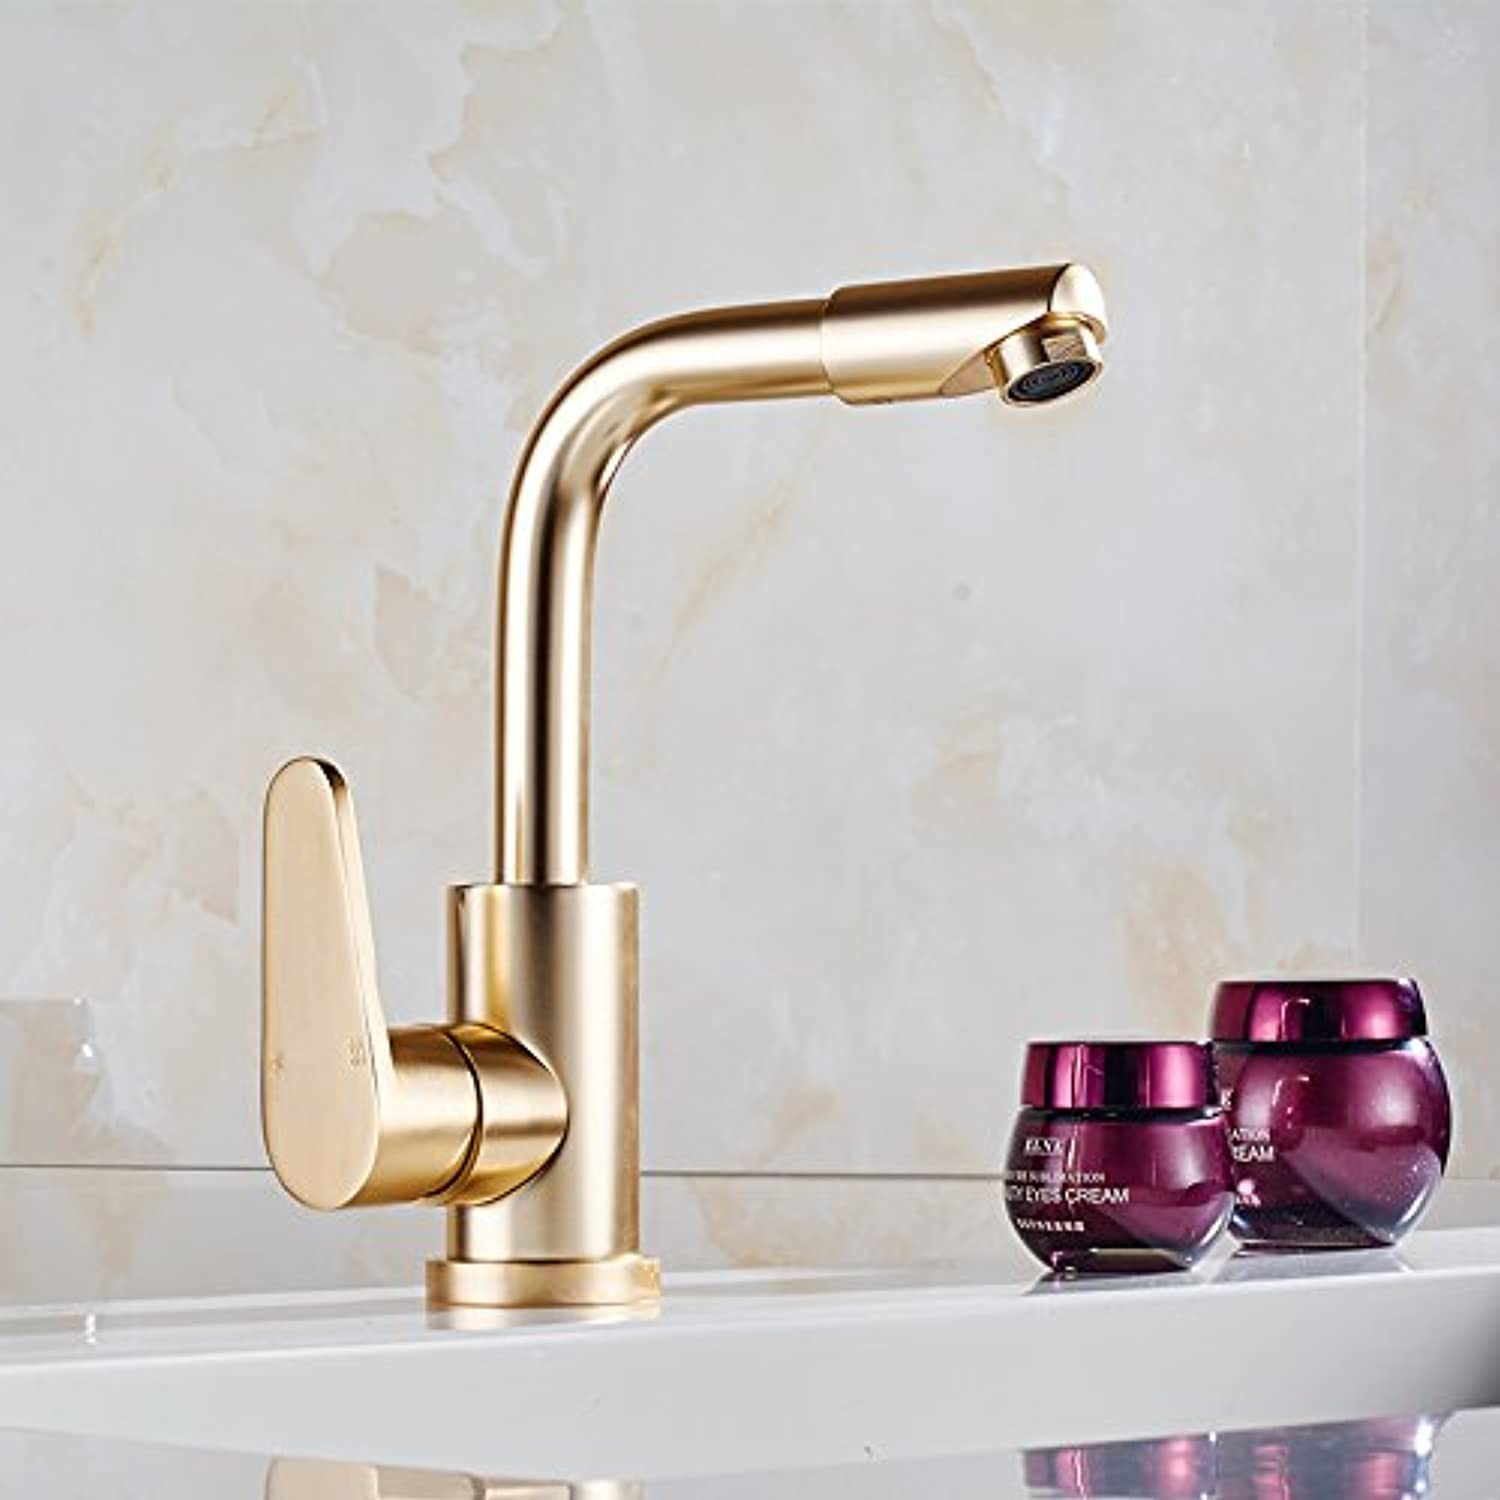 LHbox Basin Mixer Tap Continental gold taps full copper hot and cold faucets bathroom plus high bluee-tiled table top basin gold plated antique taps, space bauxite Ho Kim Taps